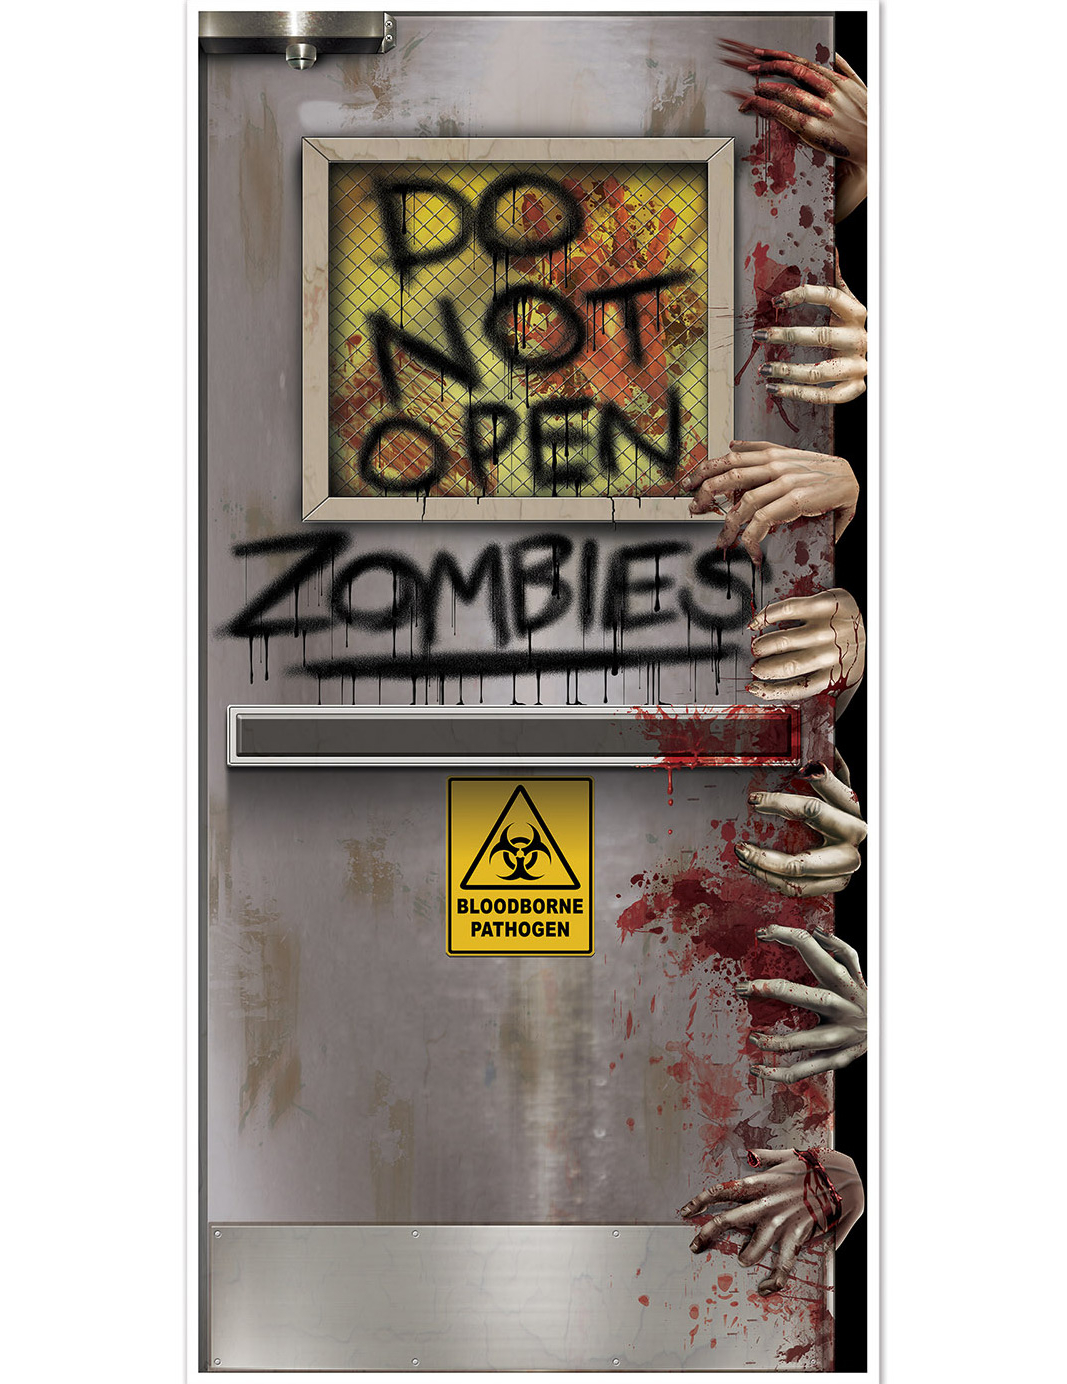 D coration de porte laboratoire zombie halloween for Idee decoration porte halloween